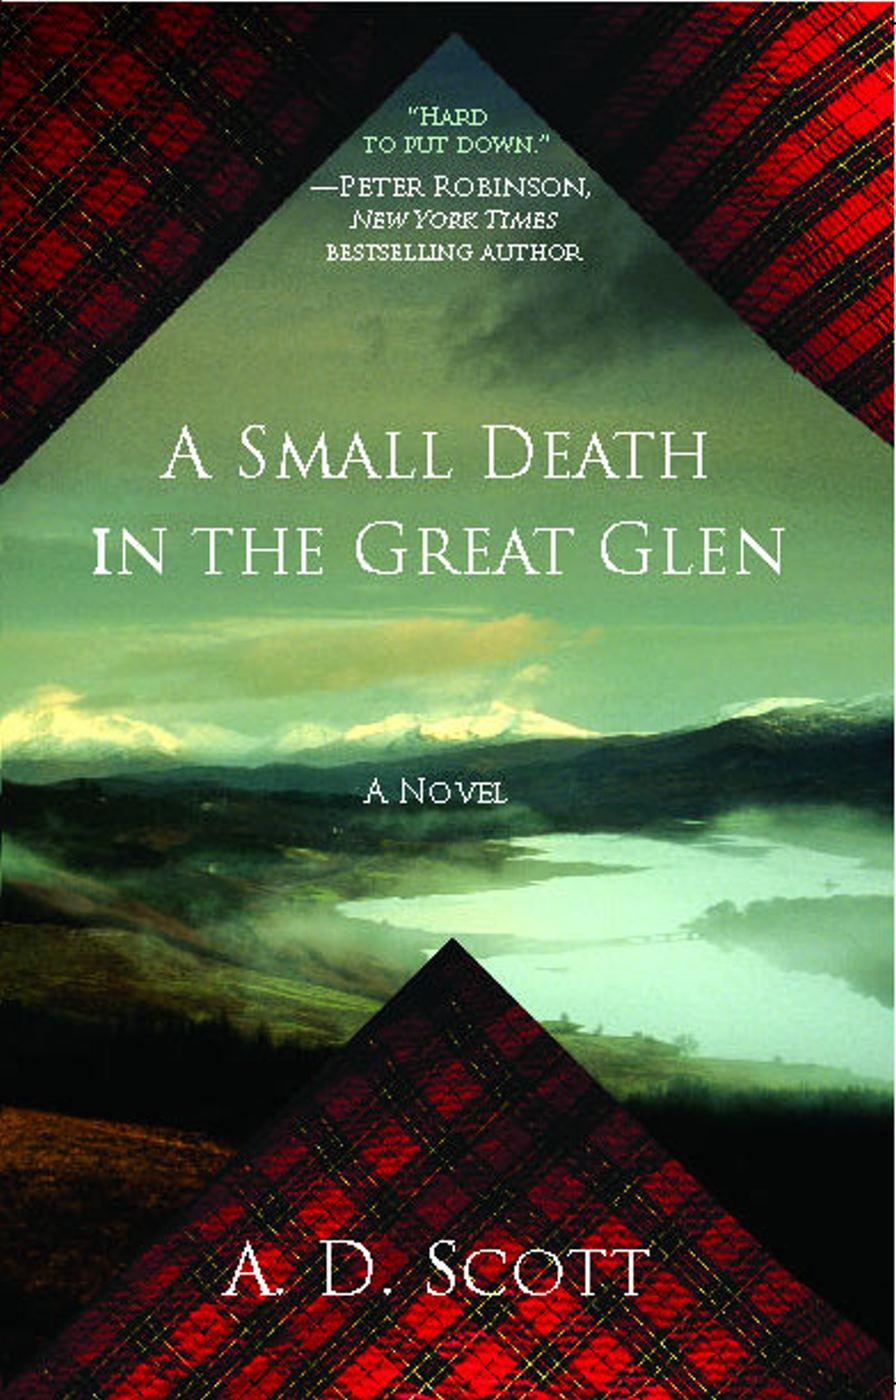 A Small Death in the Great Glen By: A. D. Scott